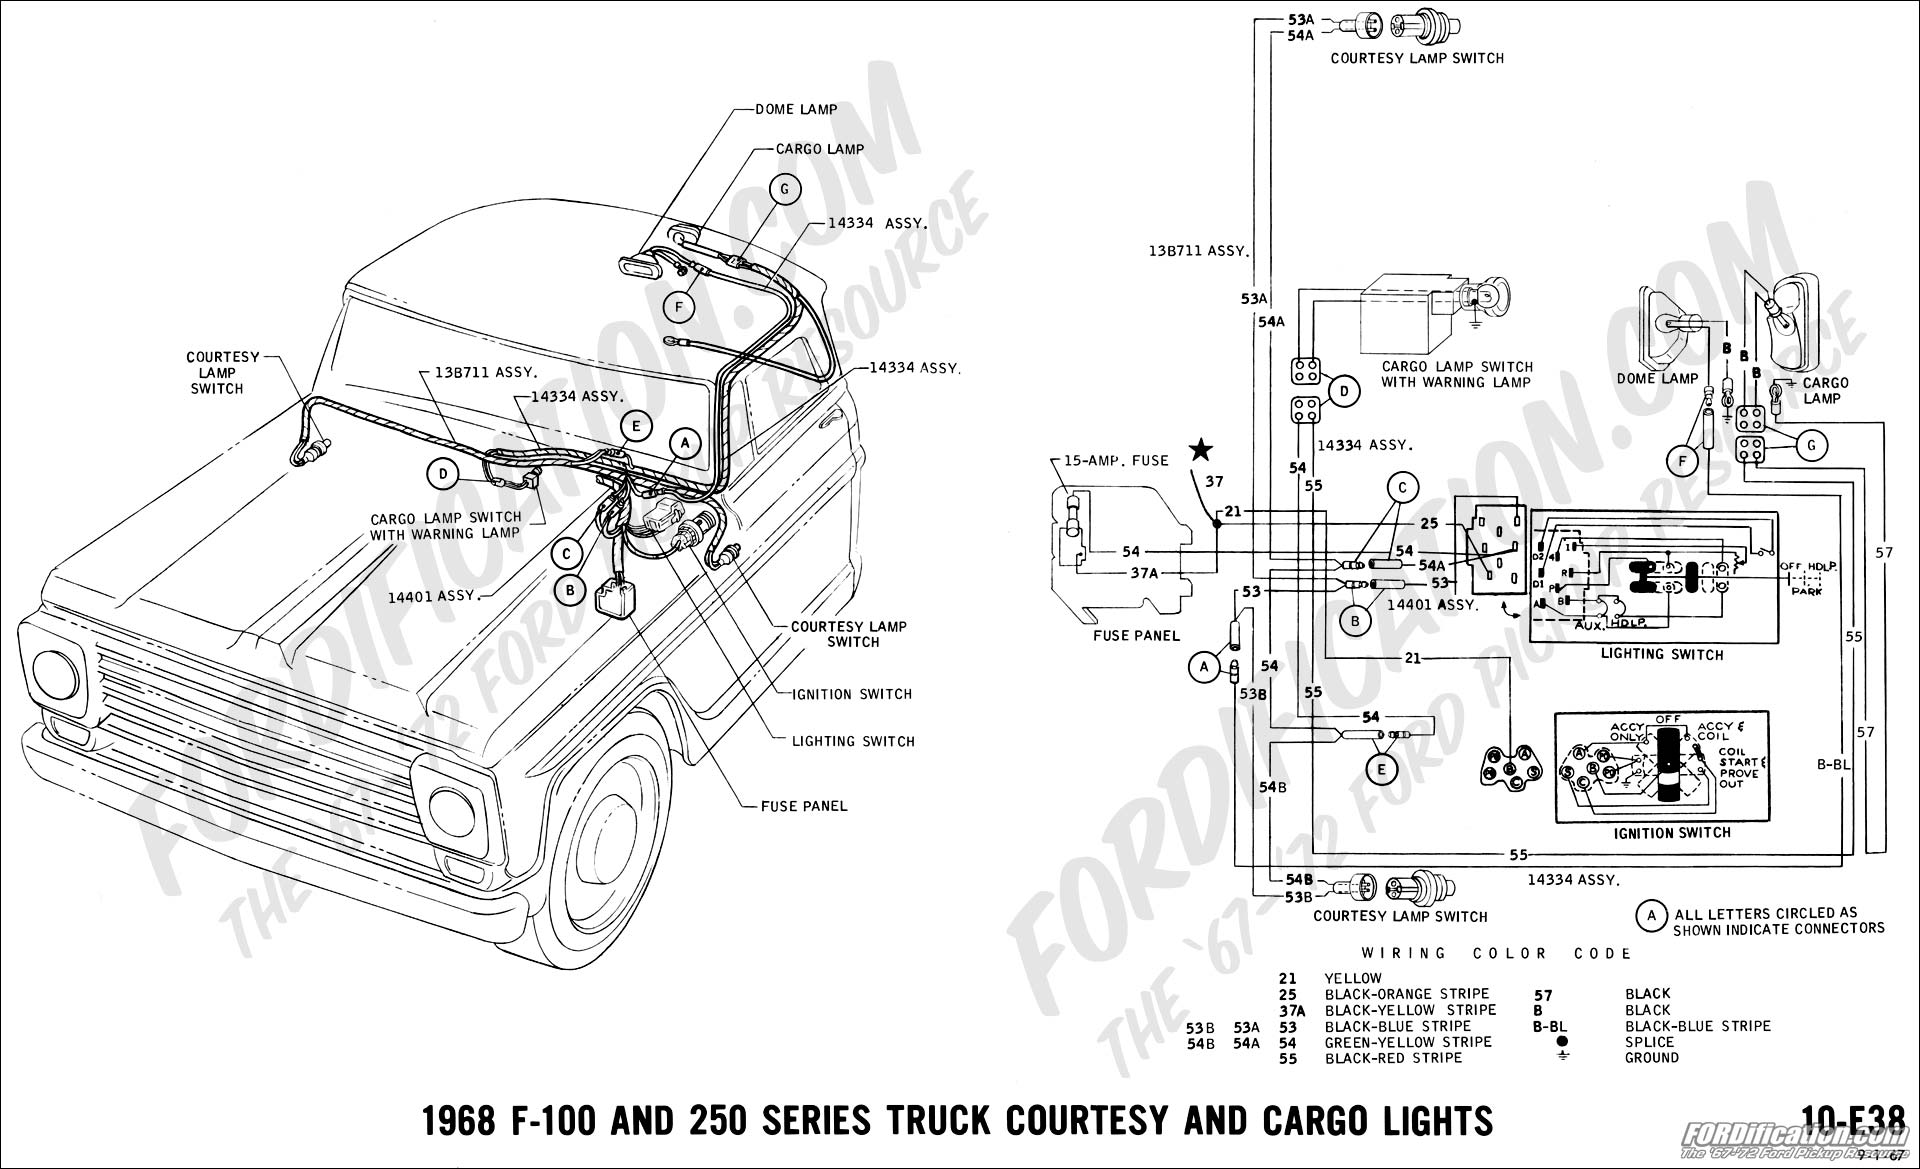 Ford F Wiring Diagram moreover D I Need Some Wiring Help Mustang Gt Mustanglights Horn moreover C Cd Fafa Dad Aa D F C D besides plete Body Wiring Diagram Of Dodge Power Wagon Wm also Eaa D F D A D C D F Aa. on 68 ford alternator wiring diagram